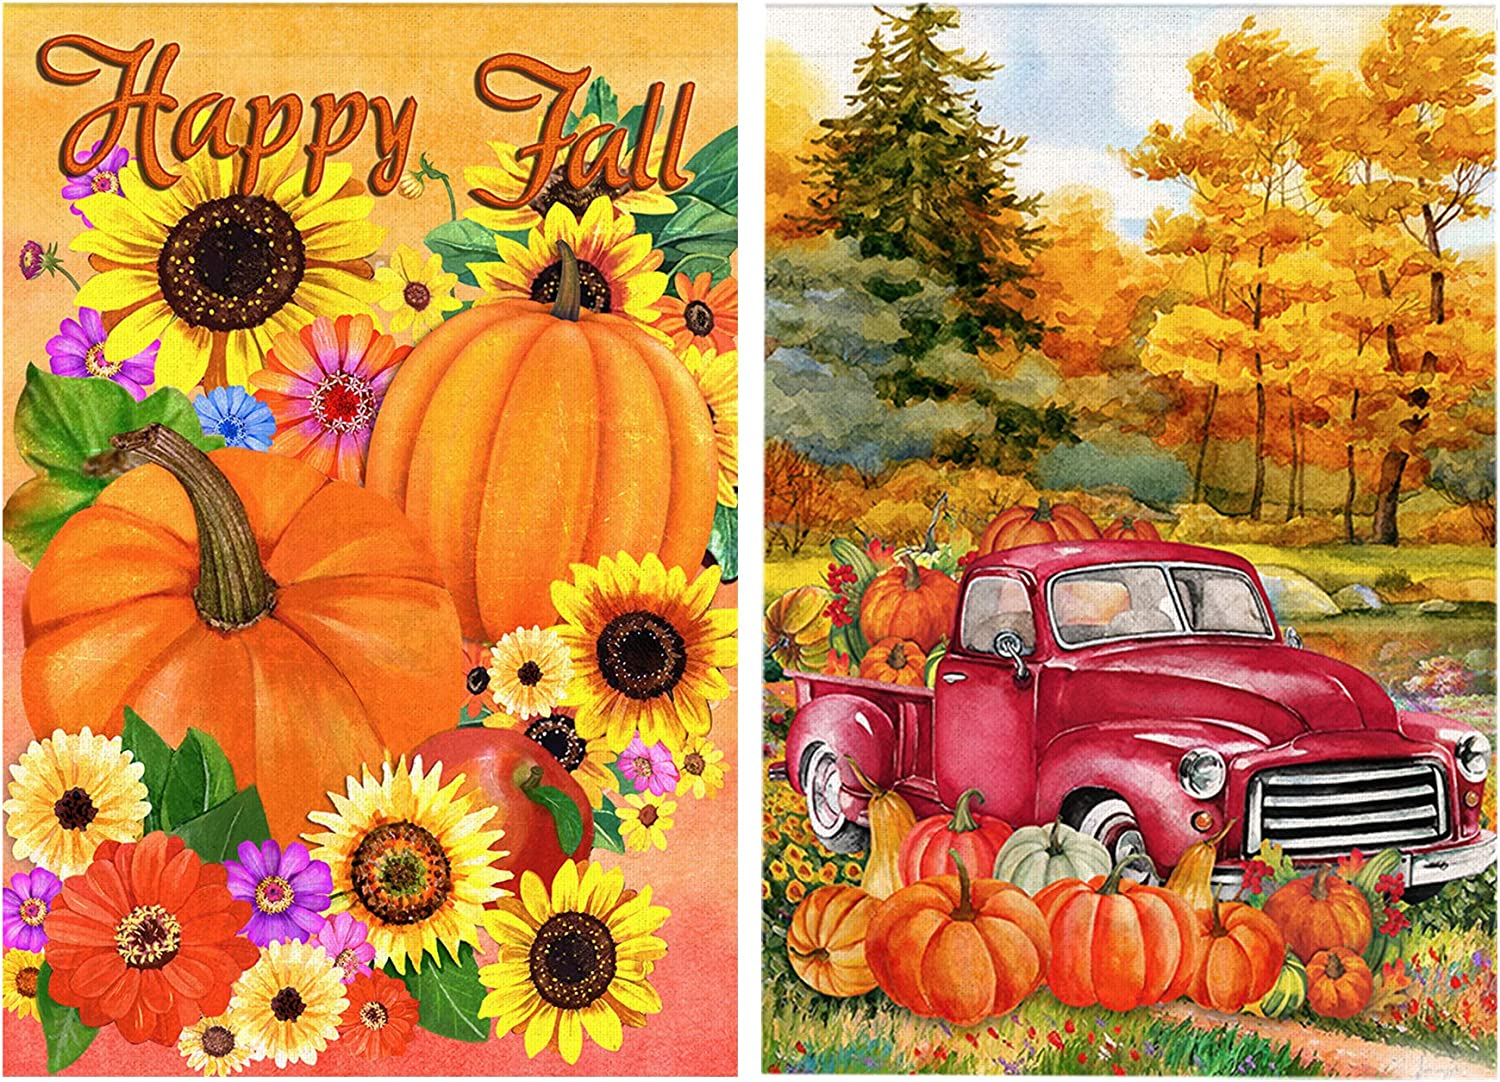 Bonsai Tree 2 Pack Fall Garden Flag, Double Sided Happy Fall Pumpkins Sunflowers Burlap House Flags 12x18 Prime, Autumn Leaves Harvest Farm Red Truck Welcome Yard Signs Farmhouse Home Outdoor Decor